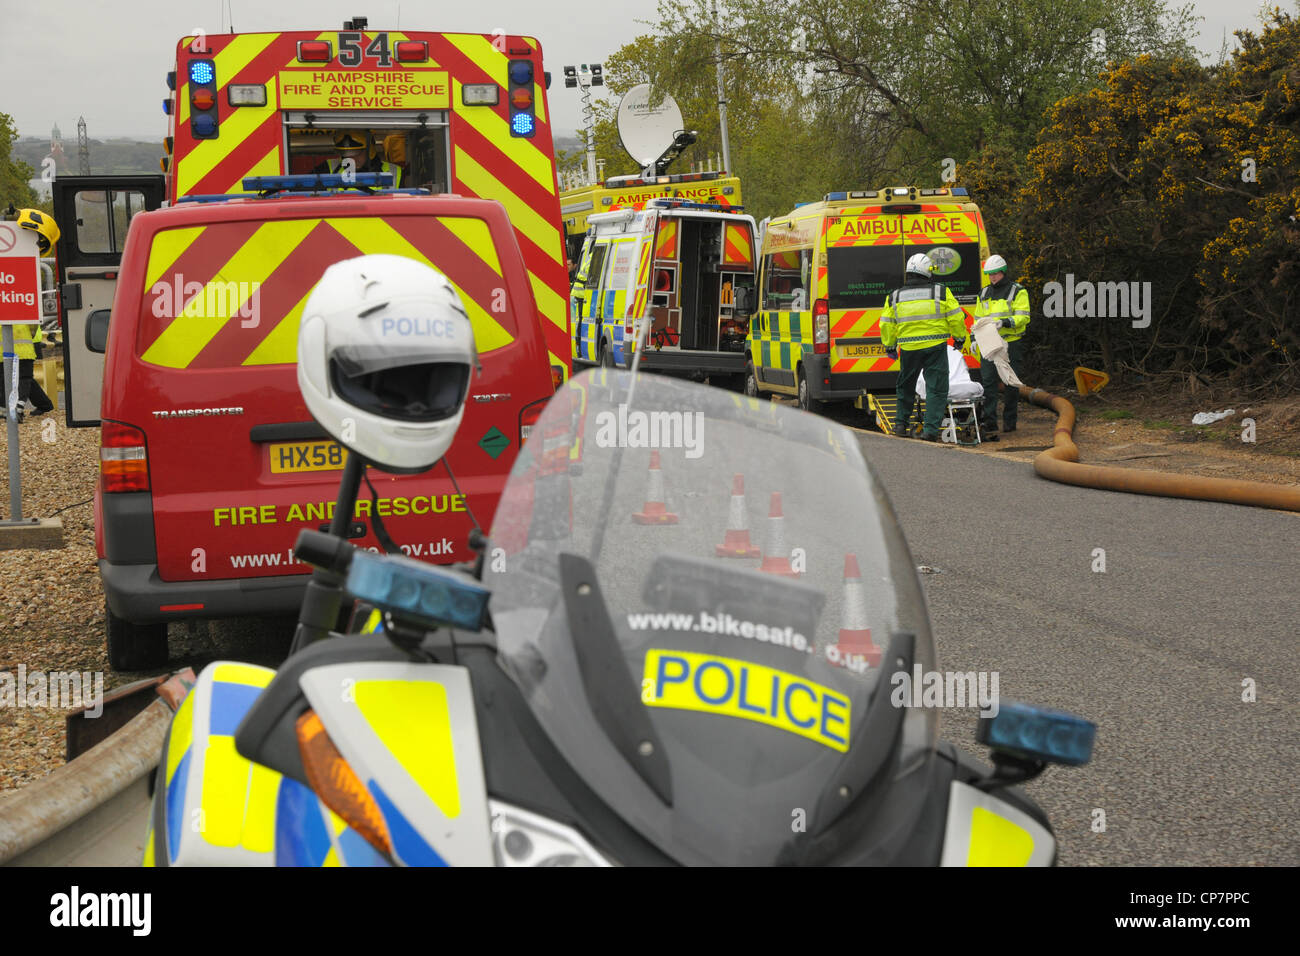 Emergency service vehicles at a major incident exercise - Stock Image